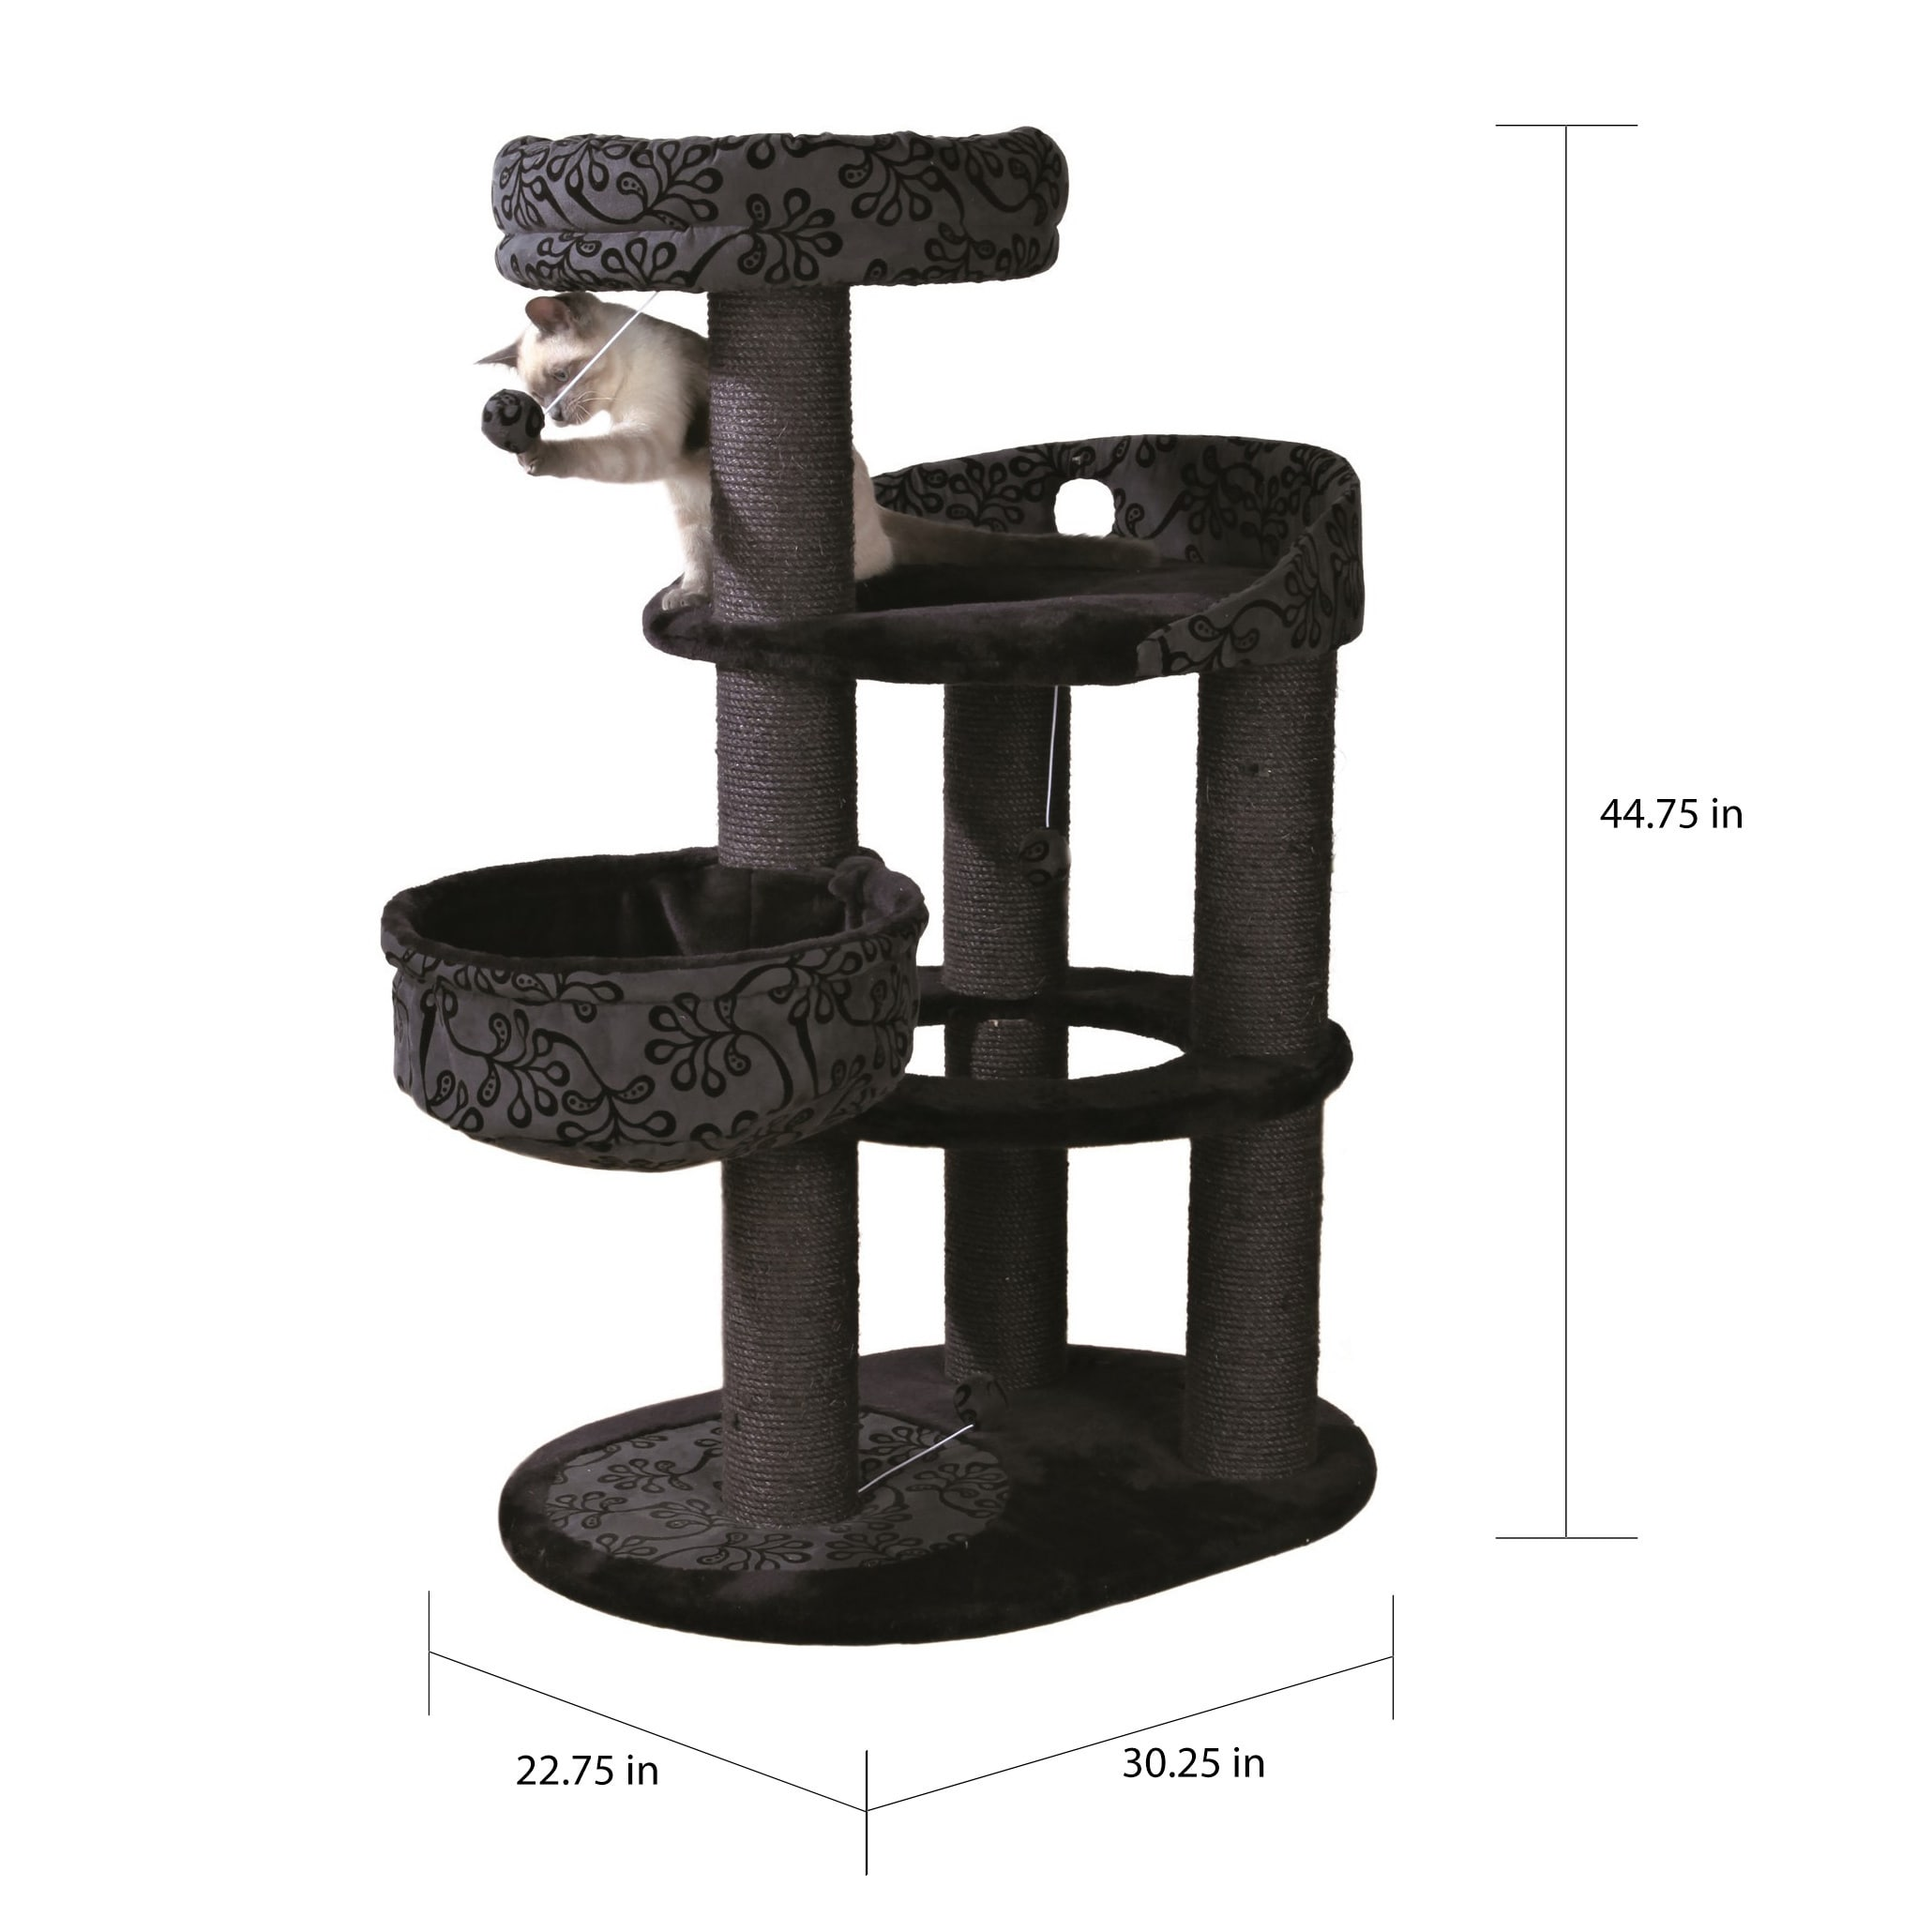 Trixie Filippo 45 Inch Cat Tree Overstock 9085391